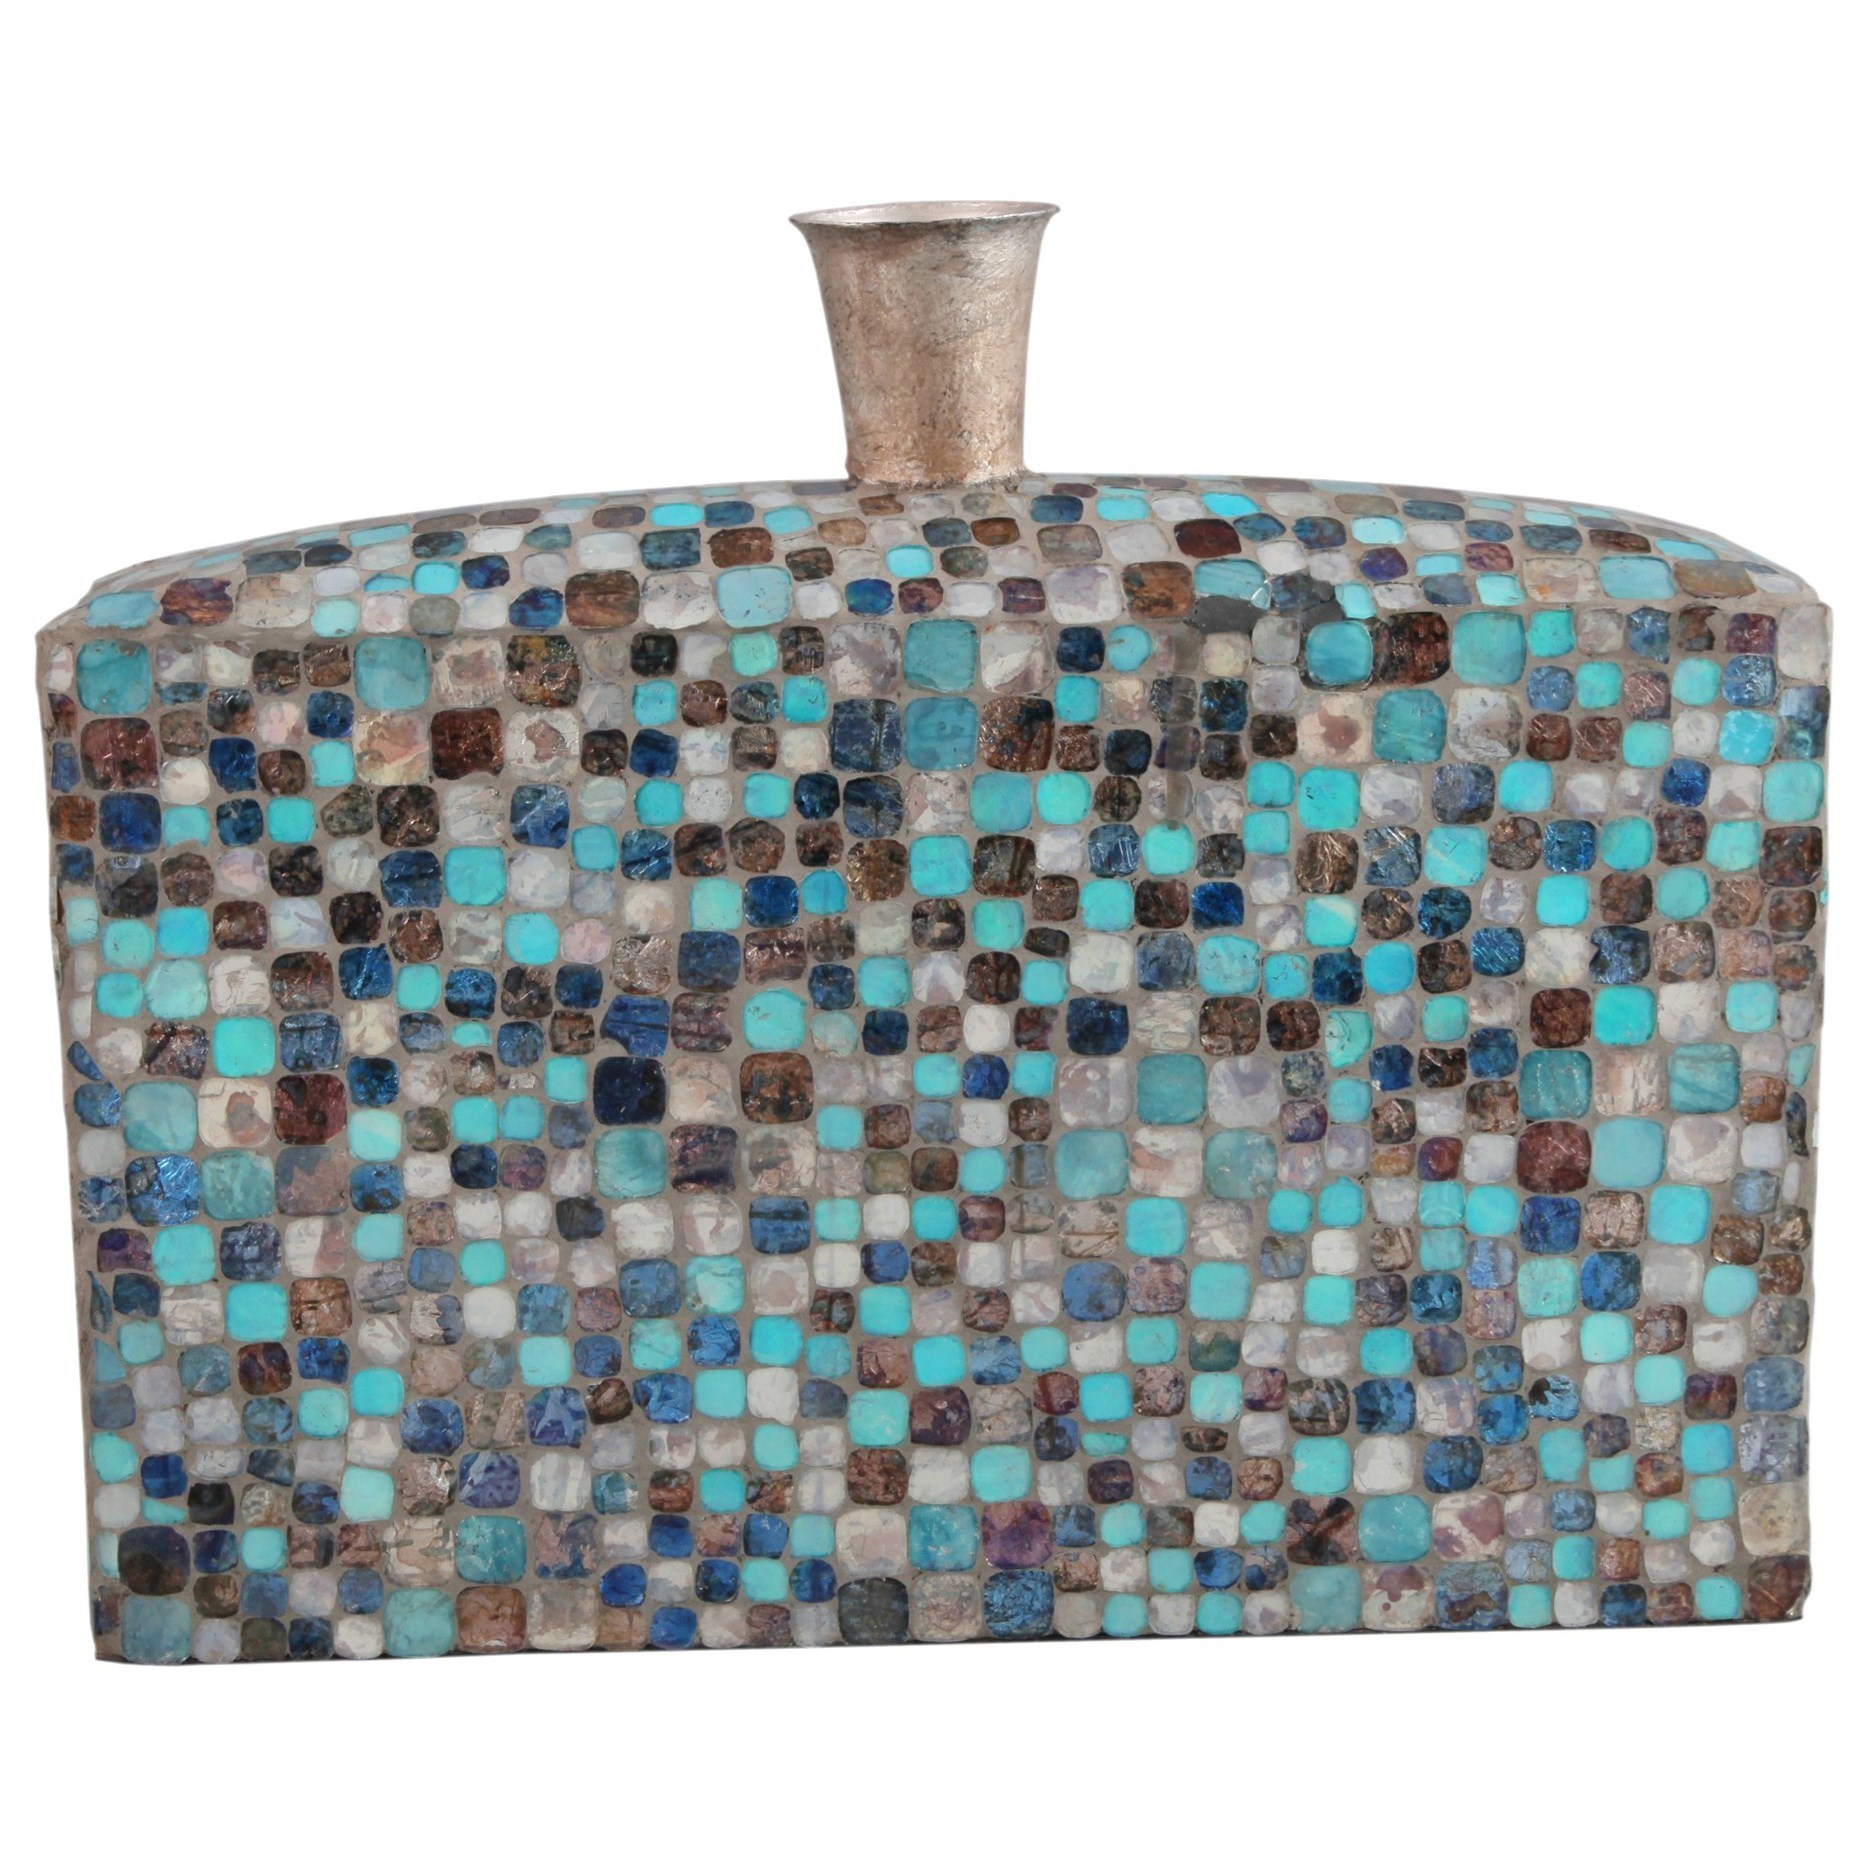 Vases & Urns Azul Mosaic Vase Low by Moe's Home Collection at Stoney Creek Furniture